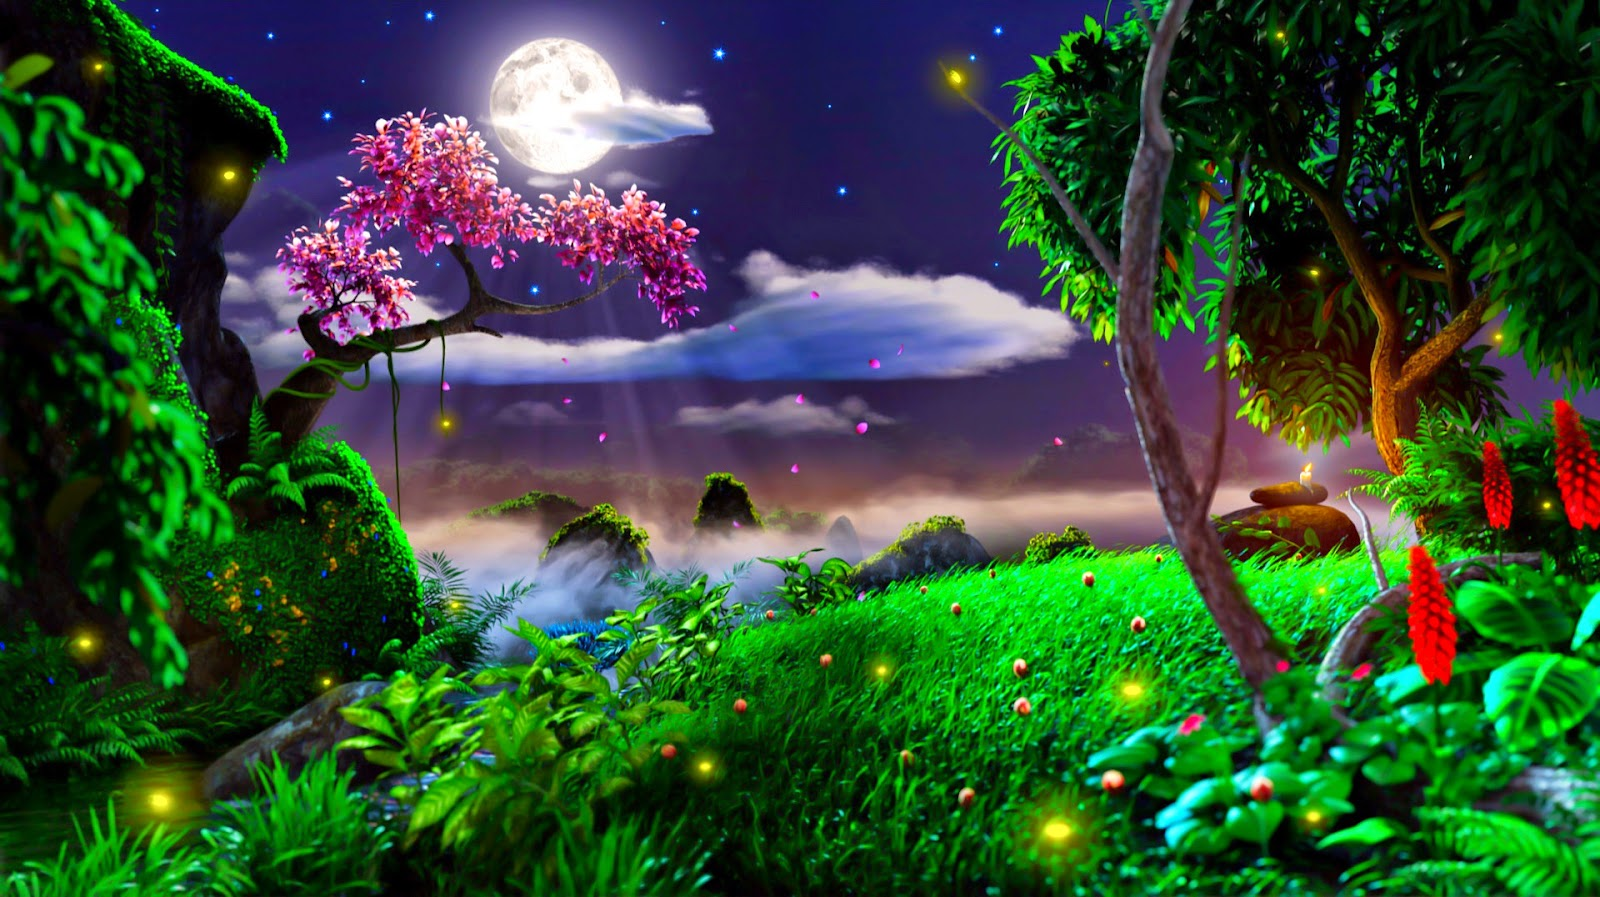 Moon light and stars night background with trees nature art images